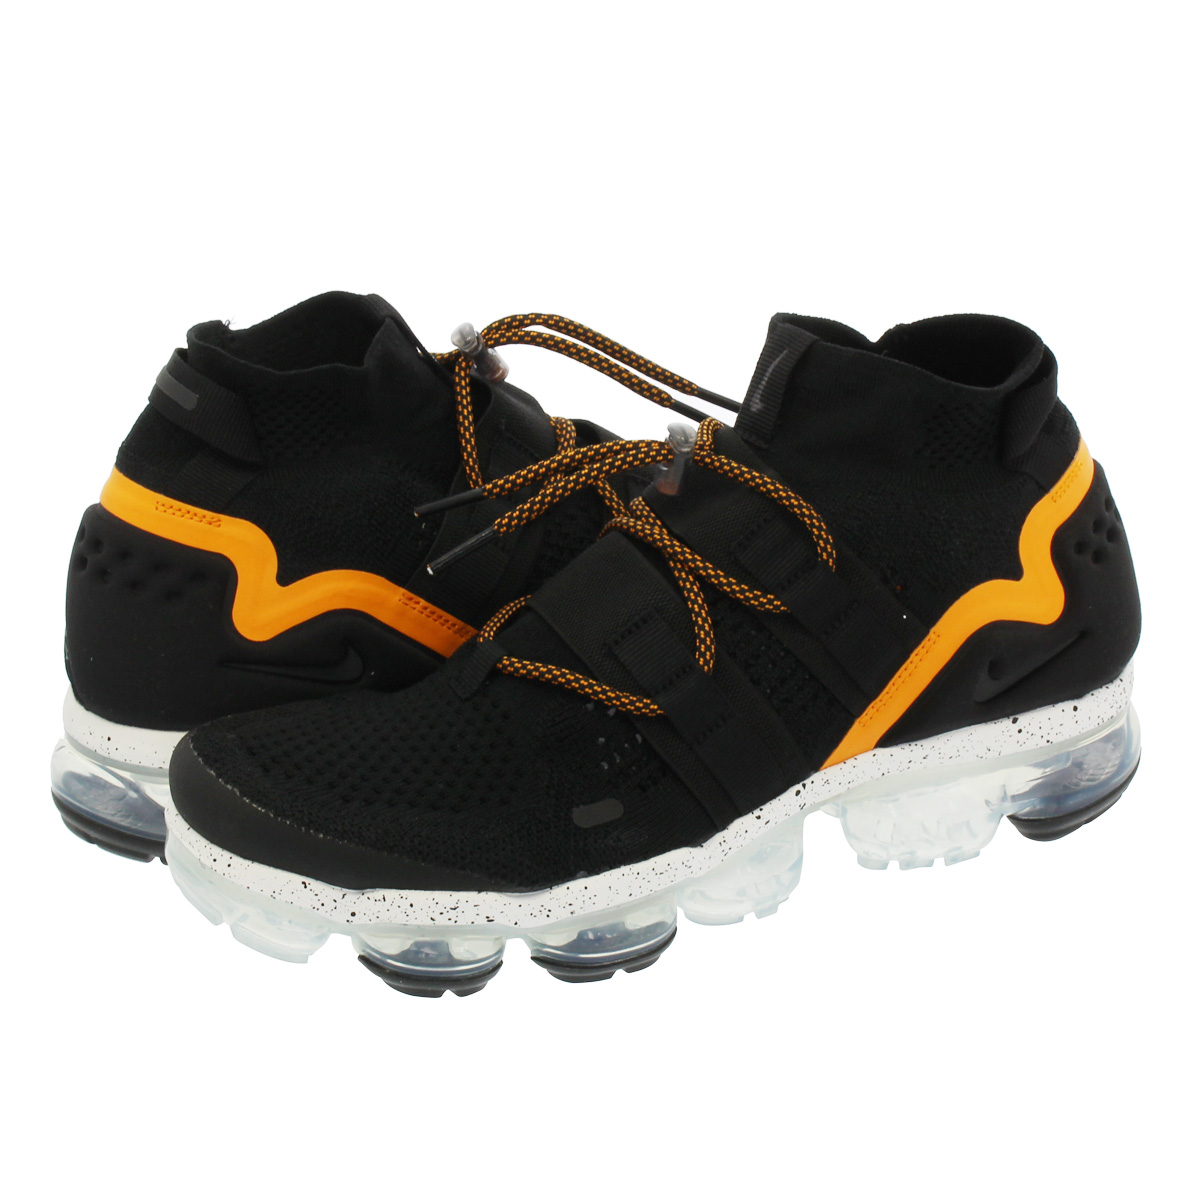 size 40 49186 d83ce NIKE AIR VAPORMAX FLYKNIT UTILITY Nike vapor max fried food knit utility  BLACK/ORANGE PEEL